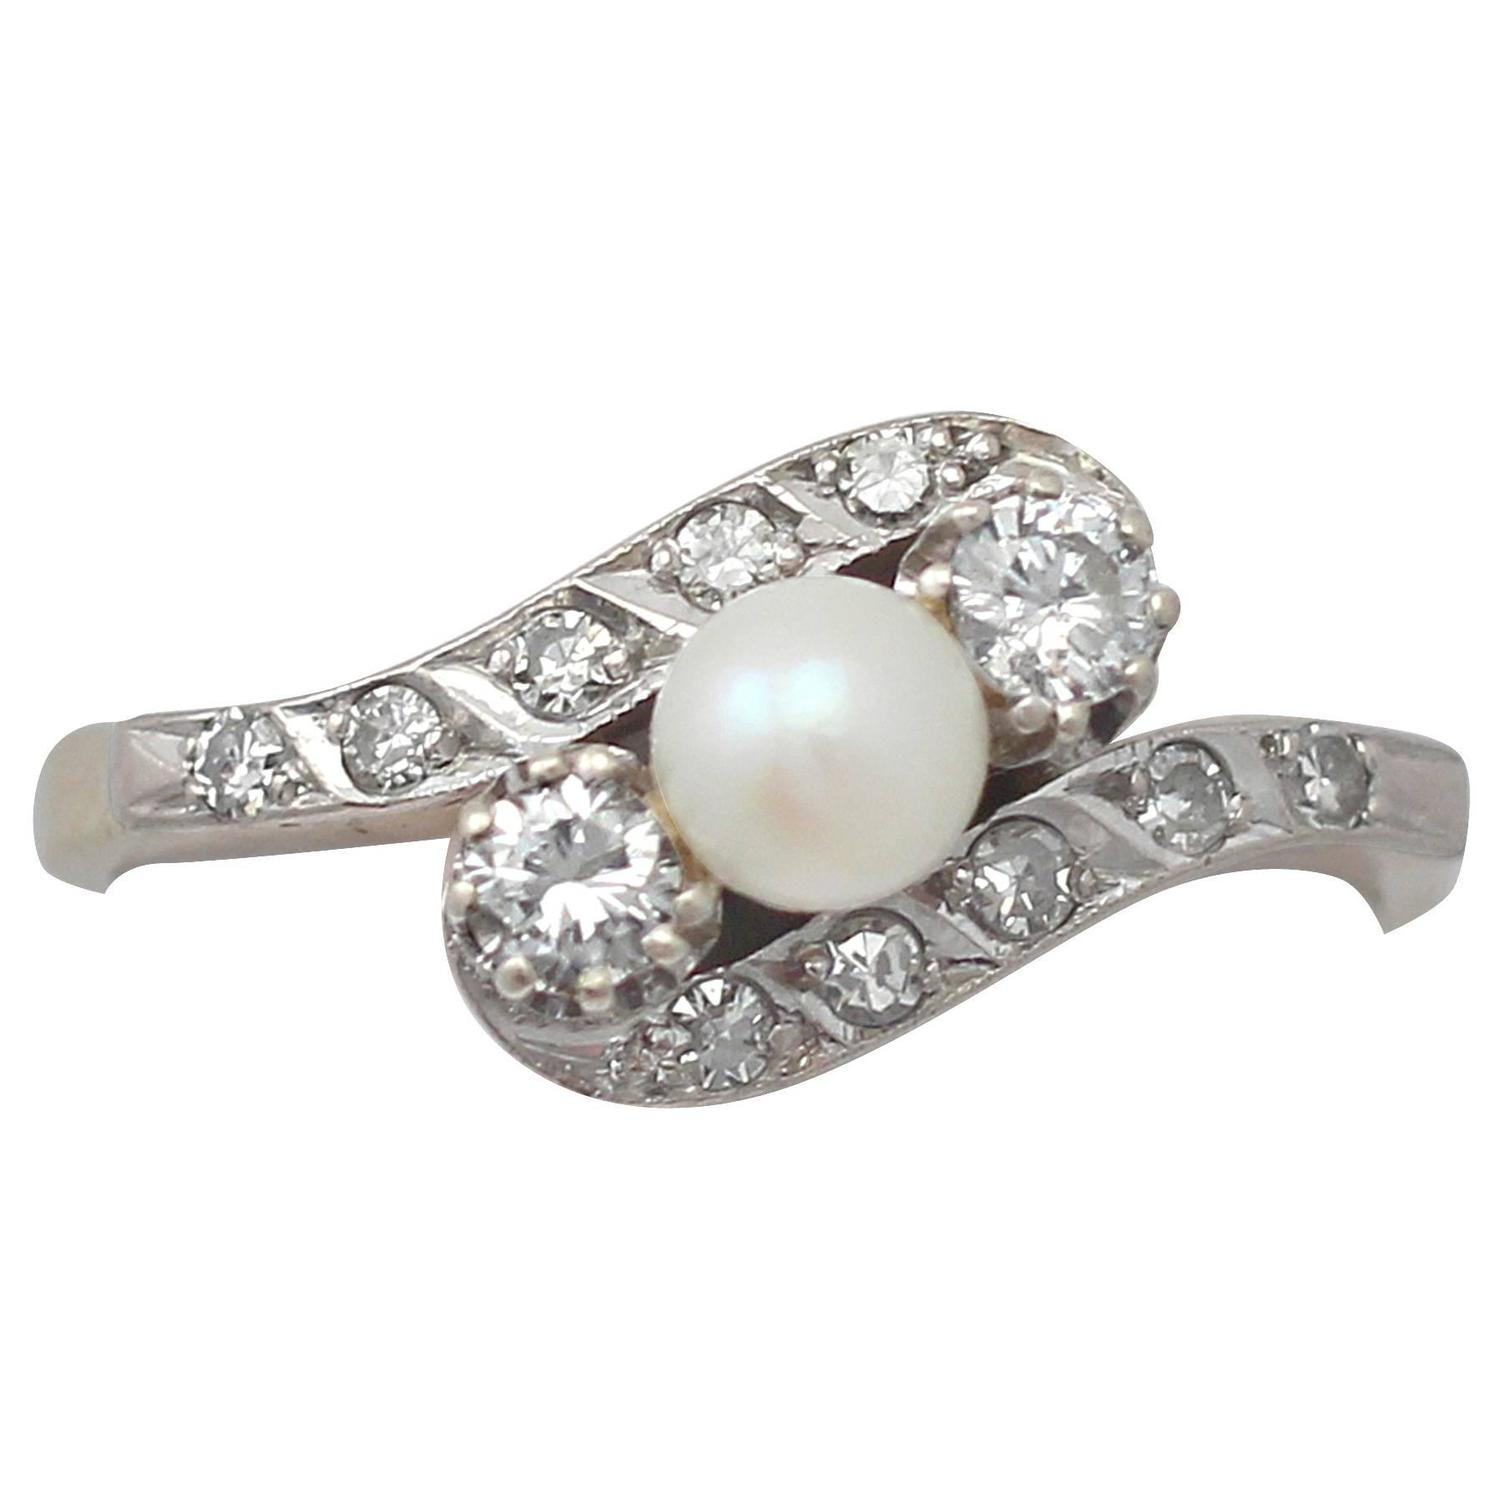 pearl fff rings diamond mode tasaki bgcolor emirates reebonz ae pad arab jewellery united engagement ring